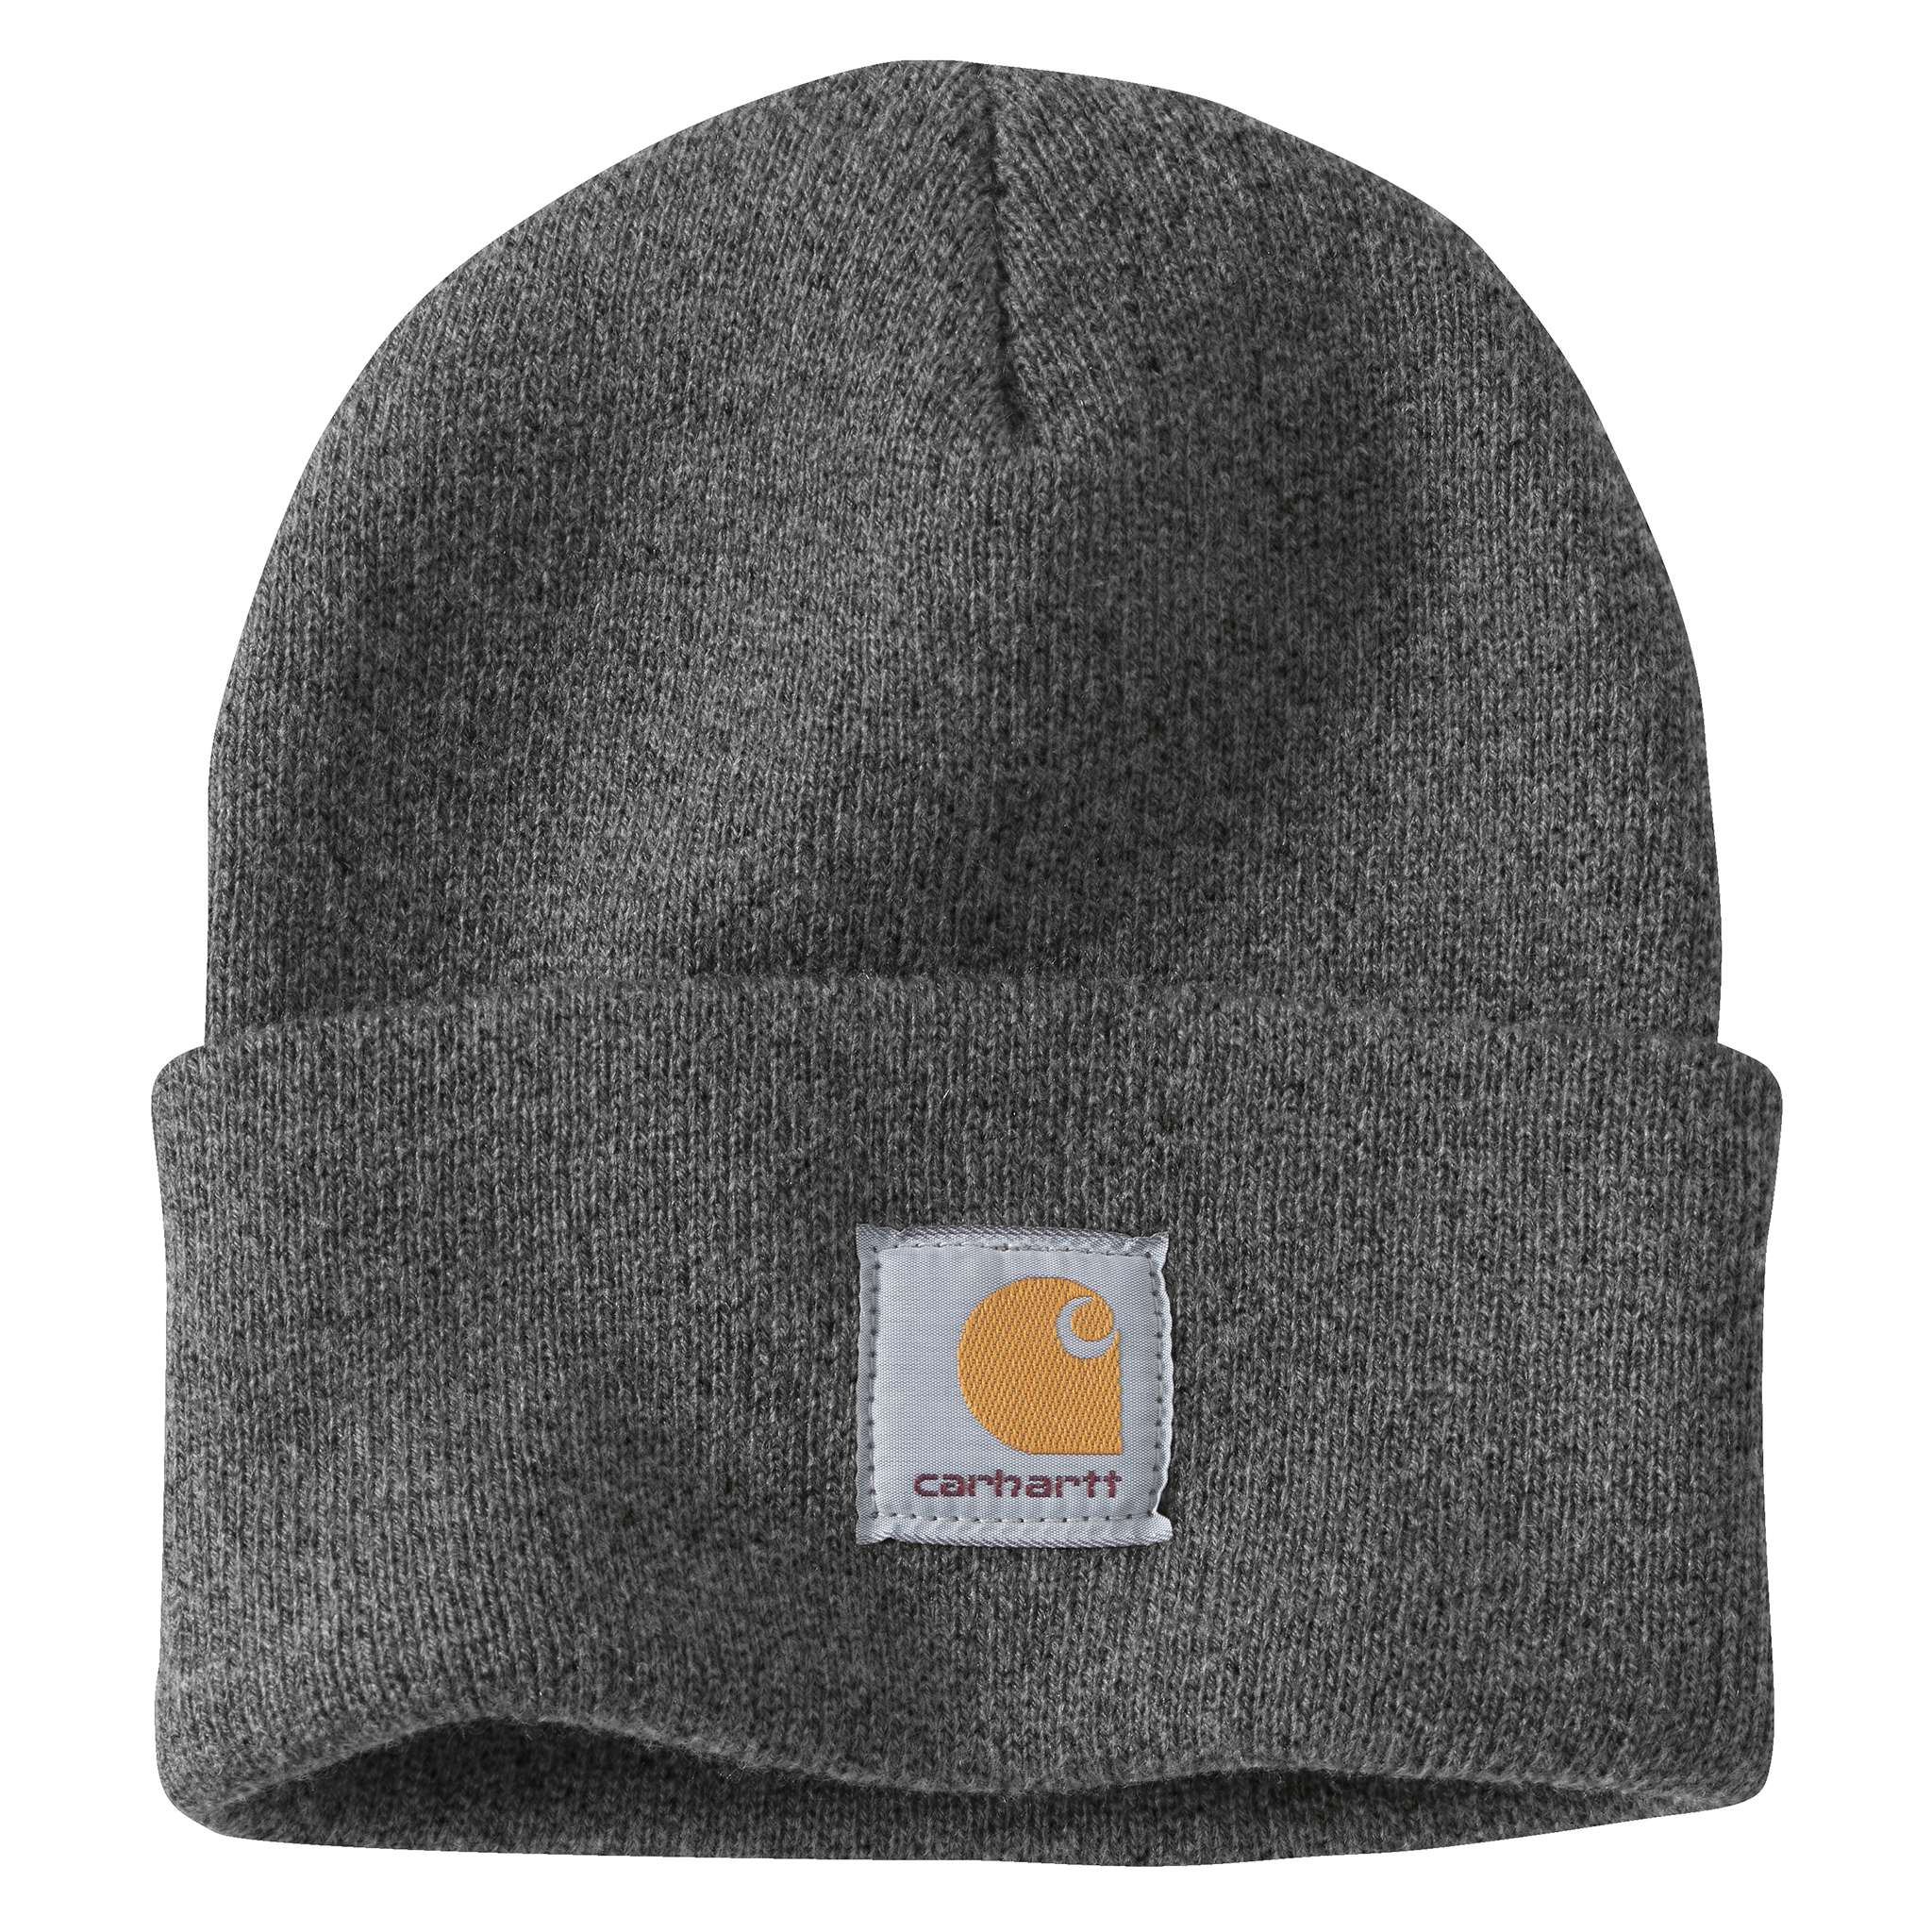 9b555e0c83e ... Coal Heather Carhartt beanie with Carhartt label stitched on front ...